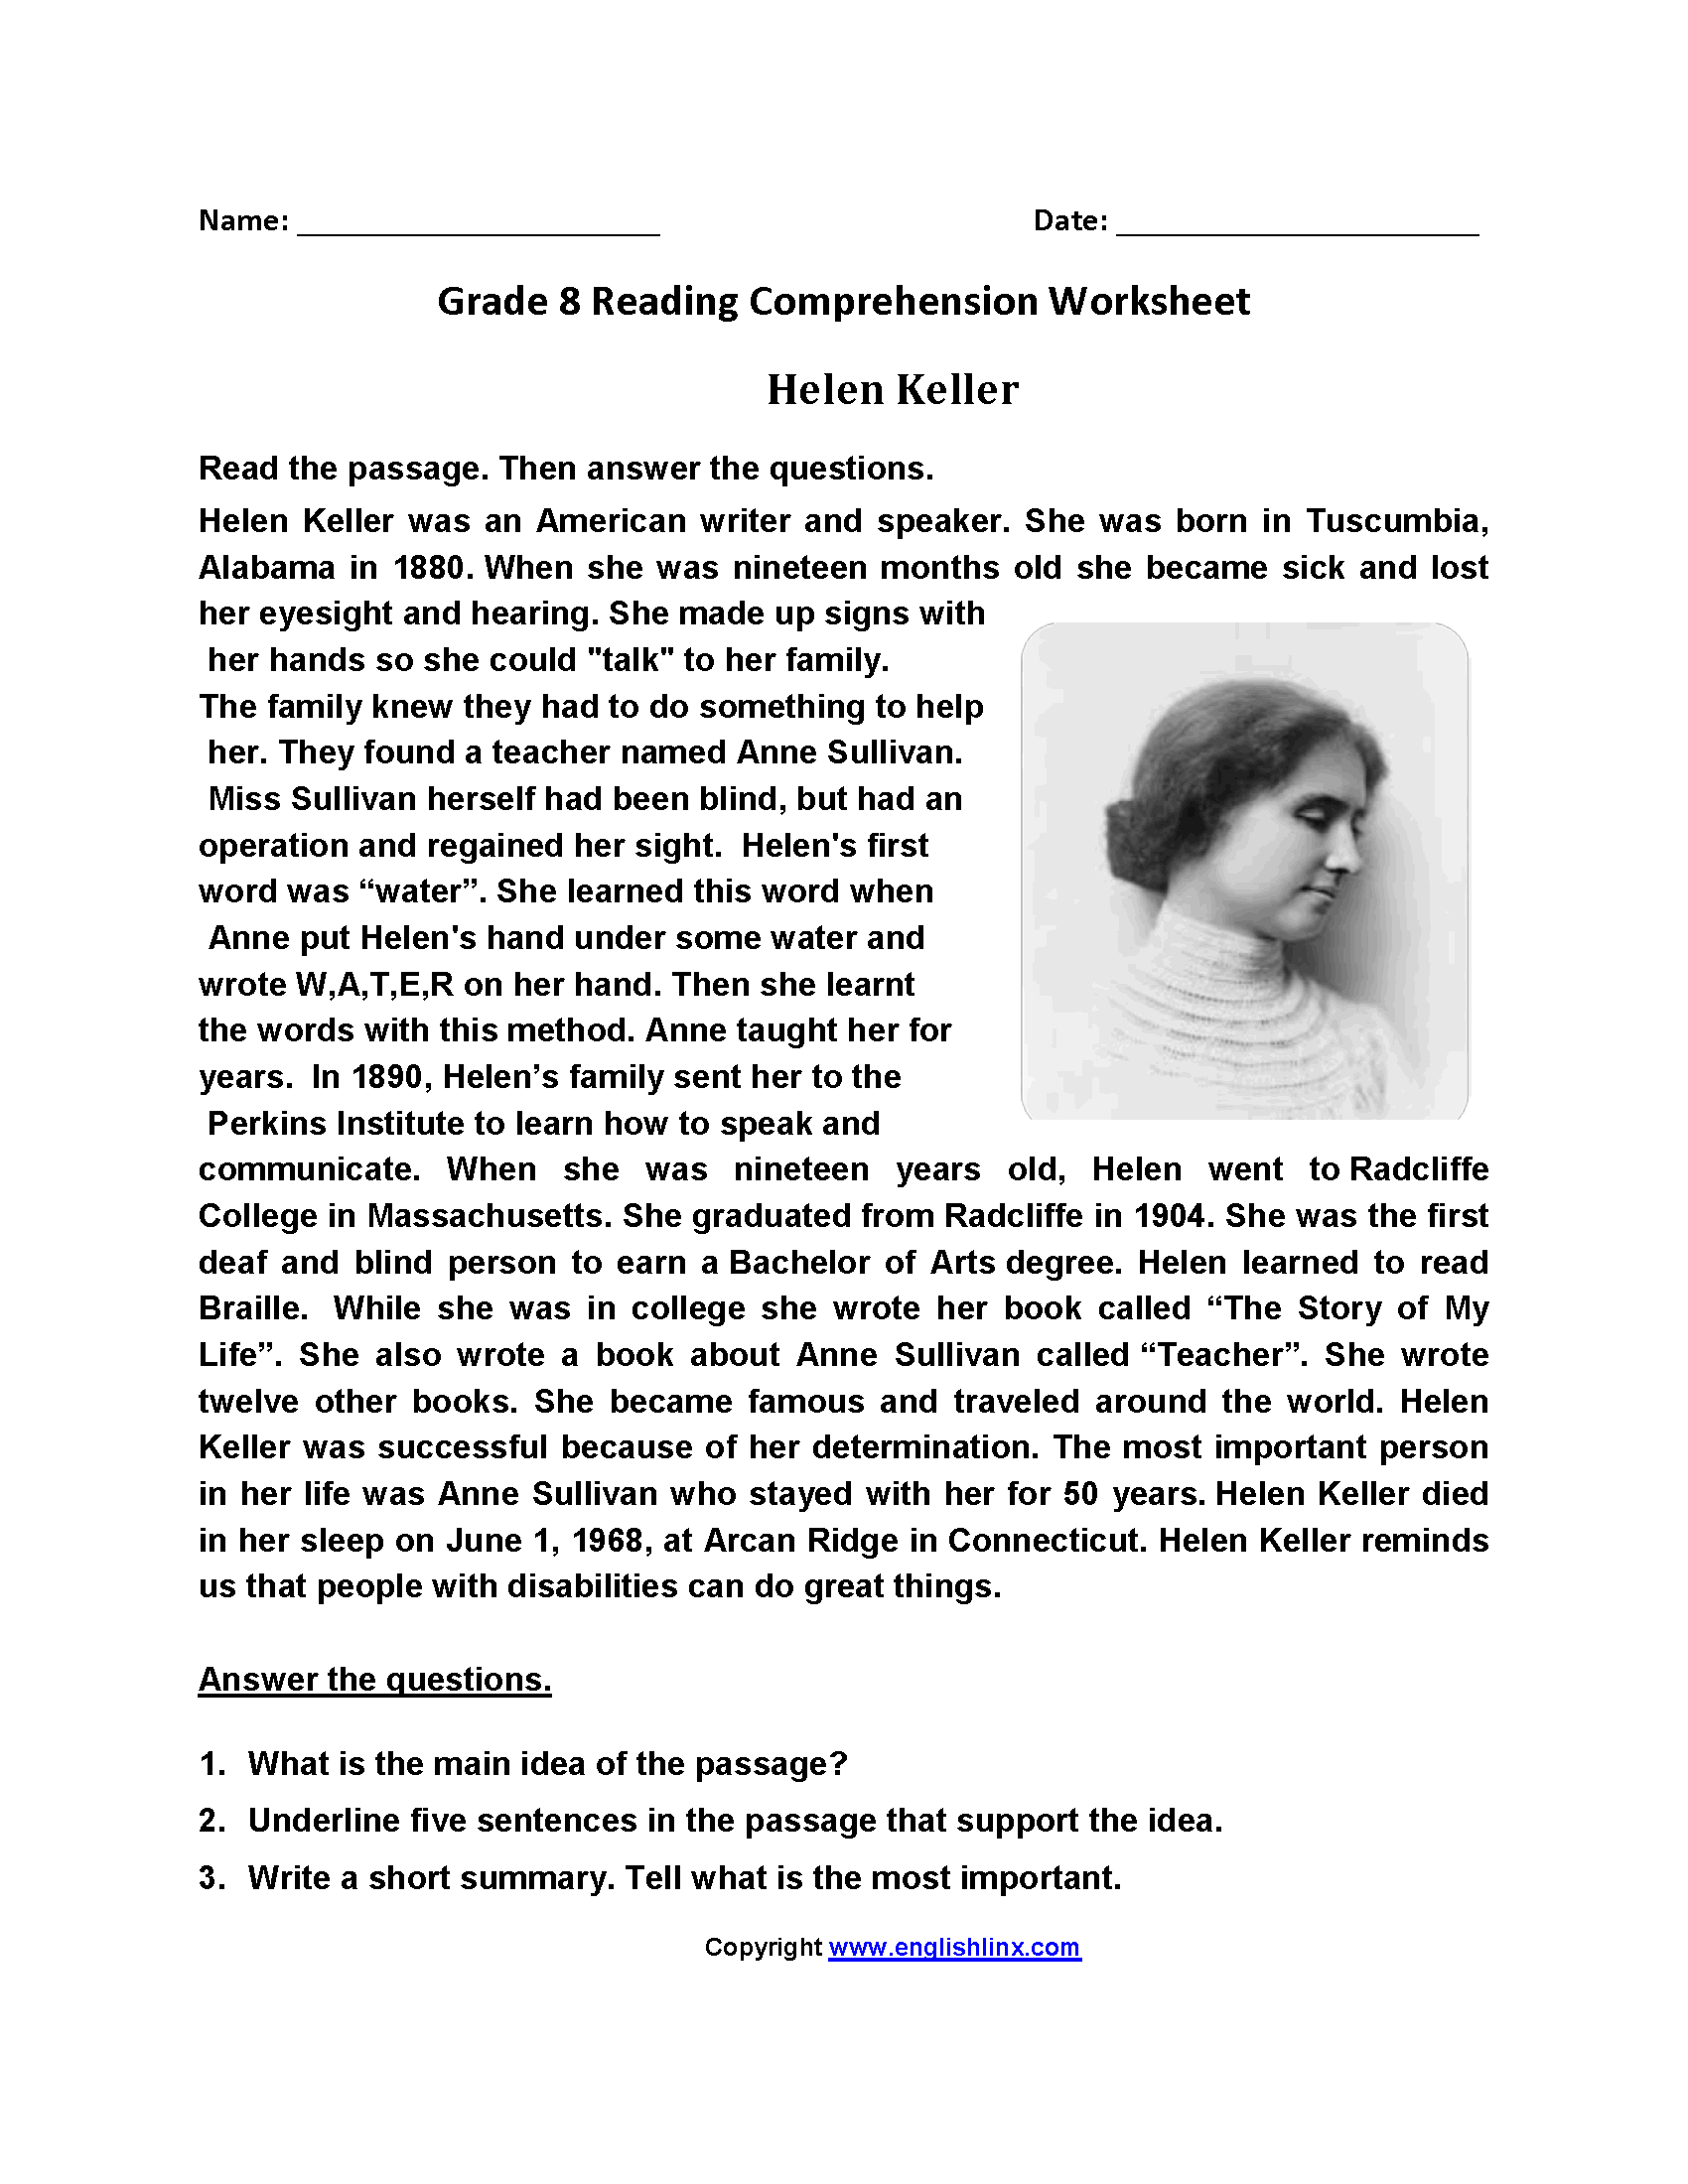 Helen Keller Eighth Grade Reading Worksheets